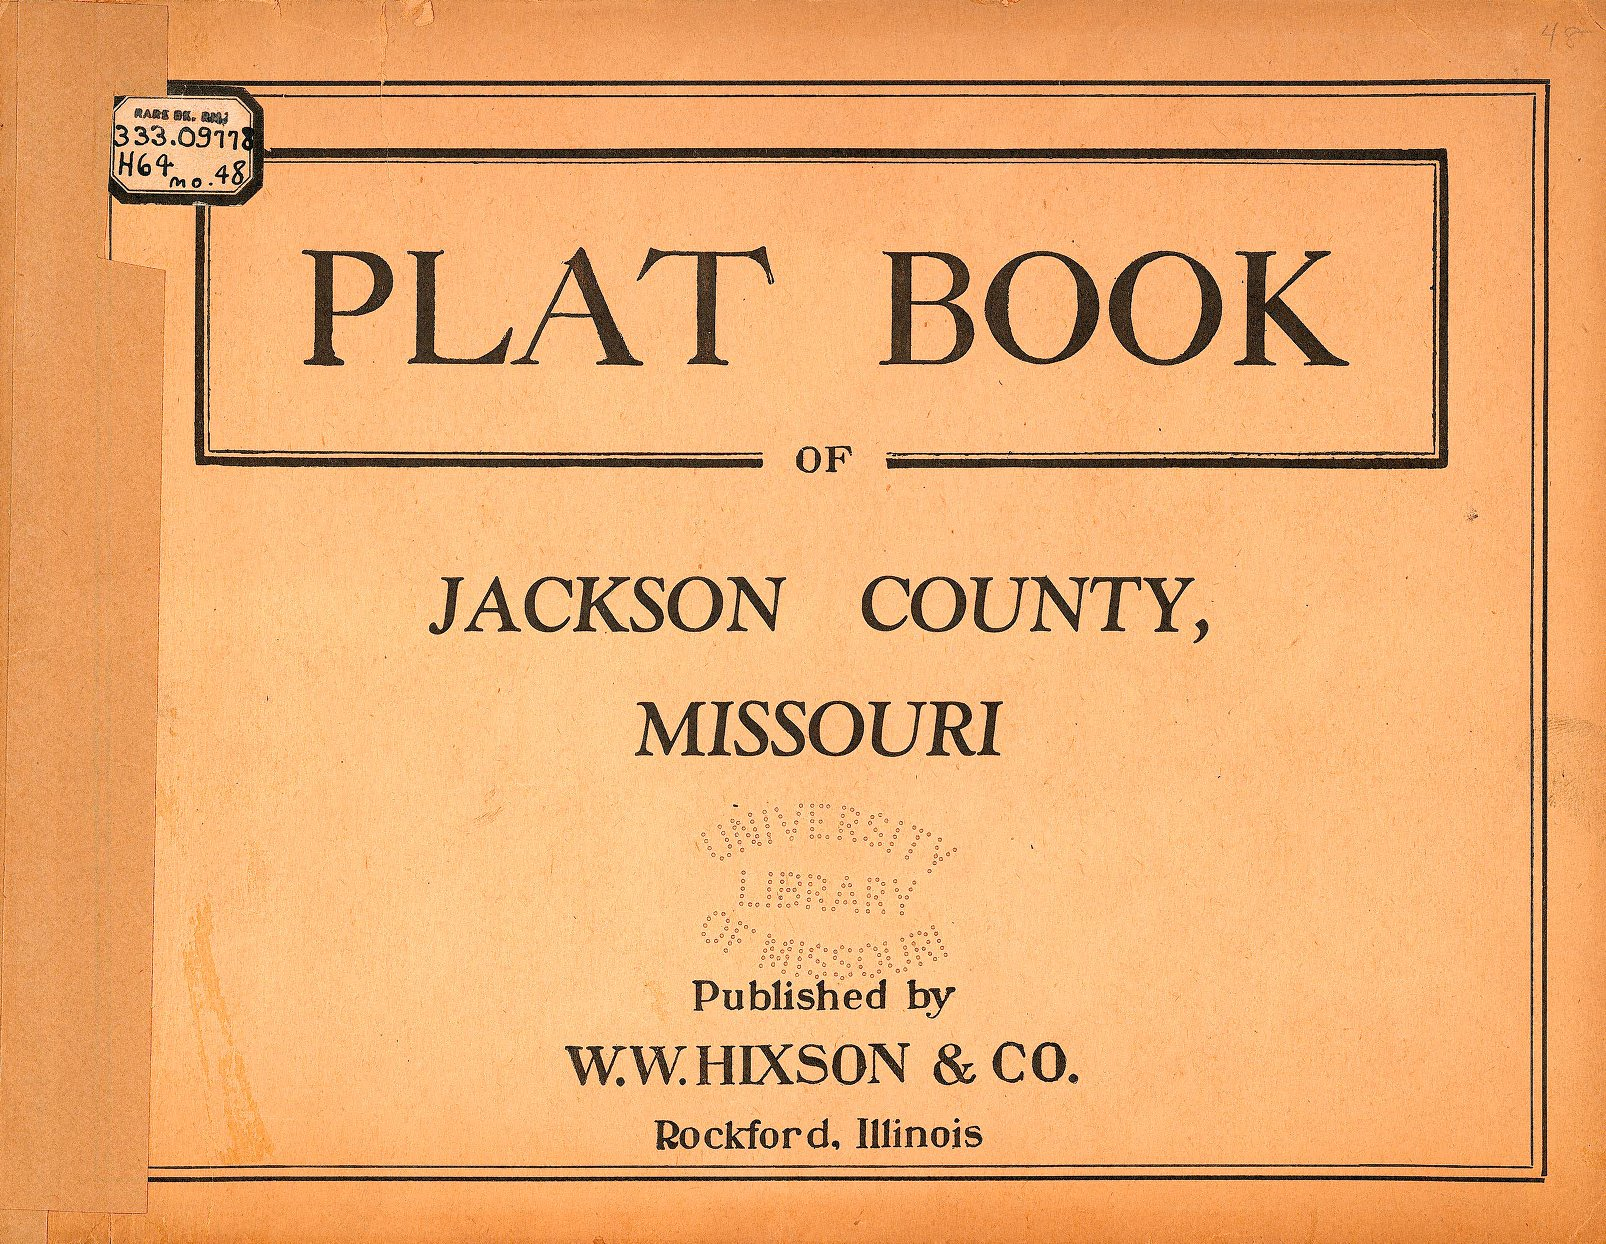 Jackson County Plat Map Plat Book of Jackson County, Missouri